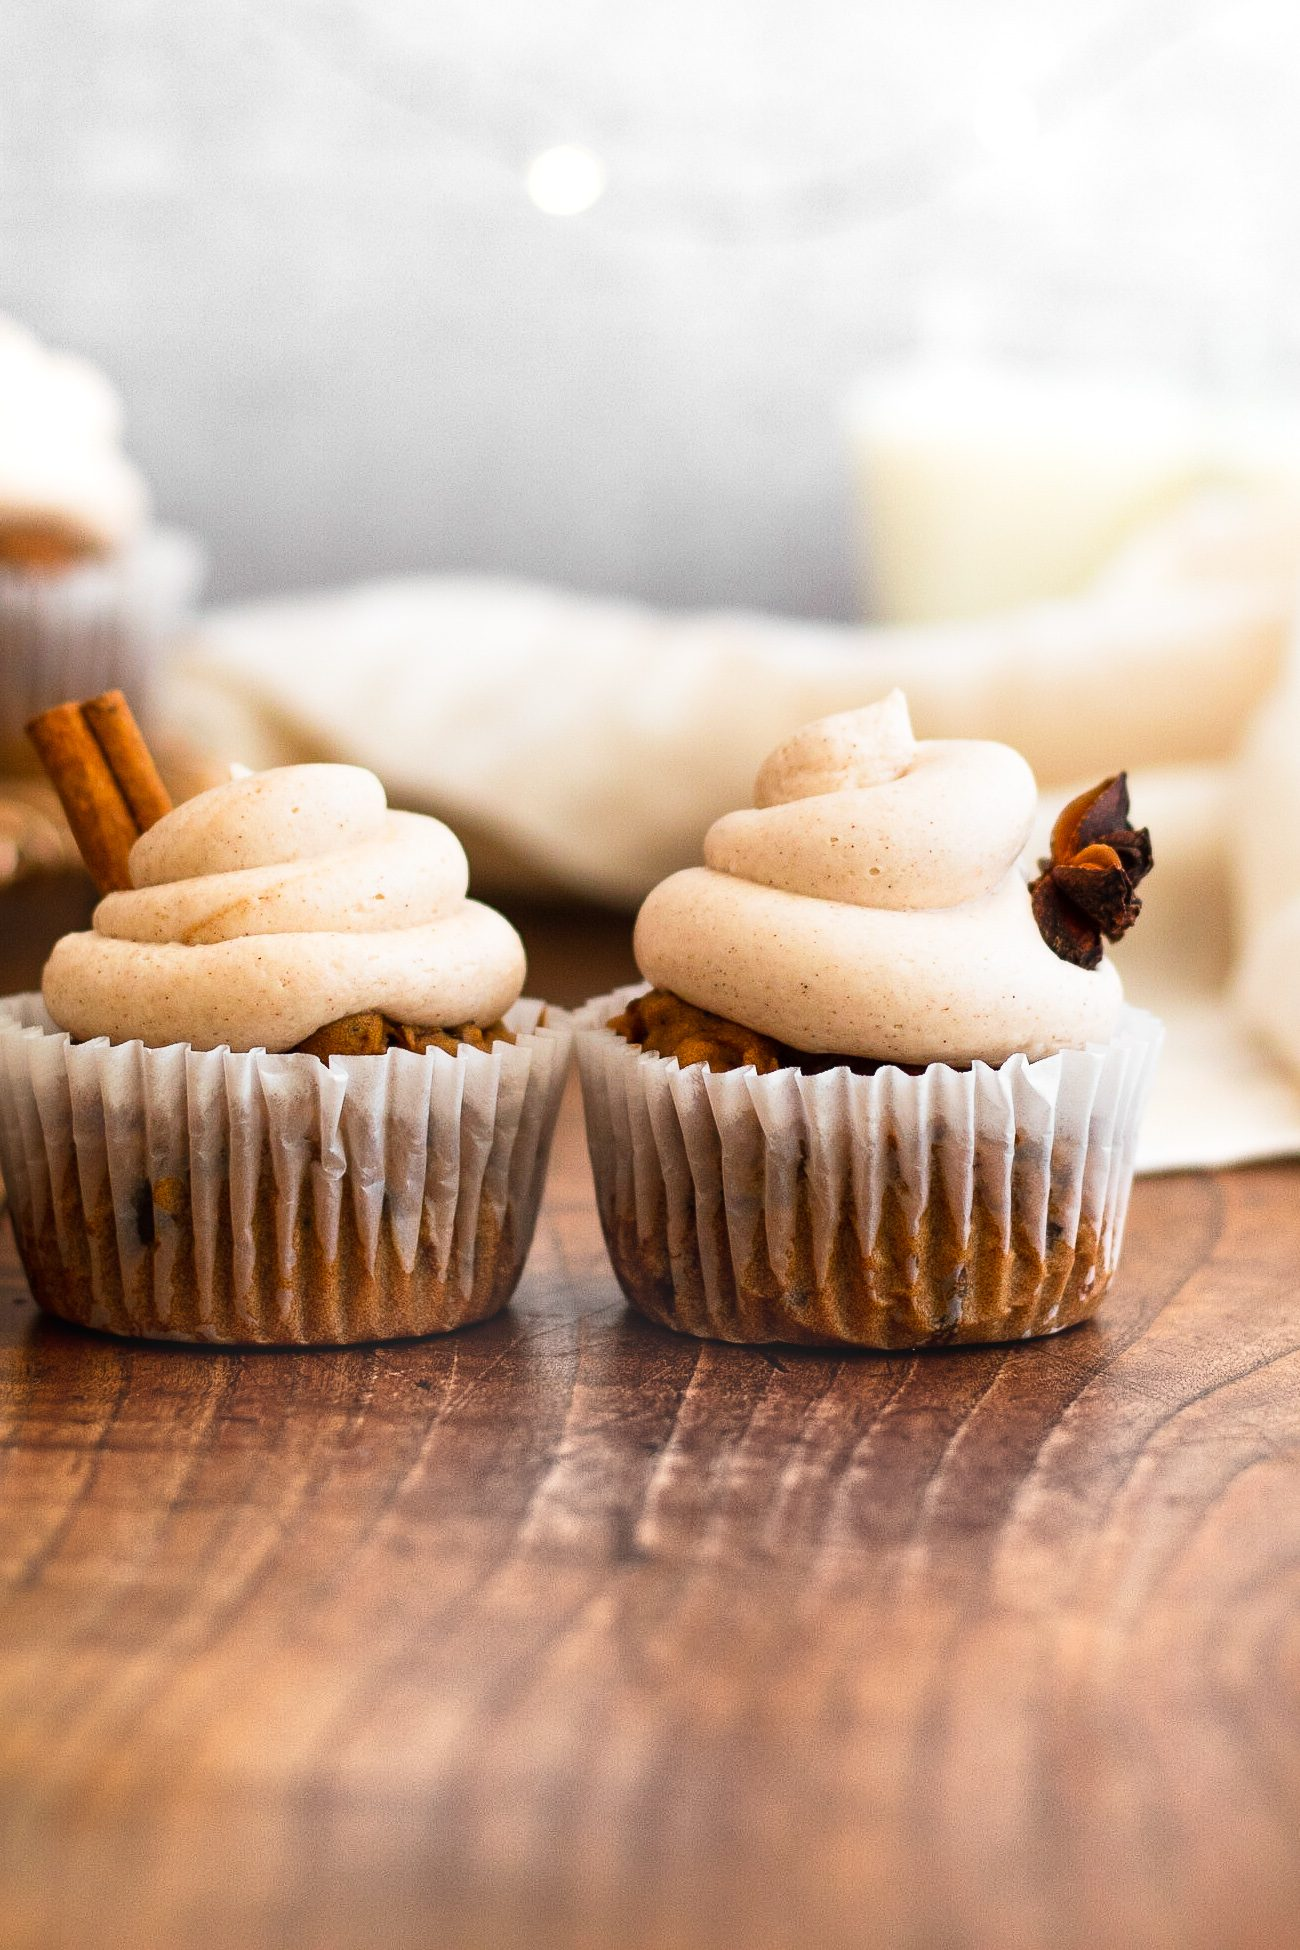 cinnamon cupcakes on wooden board